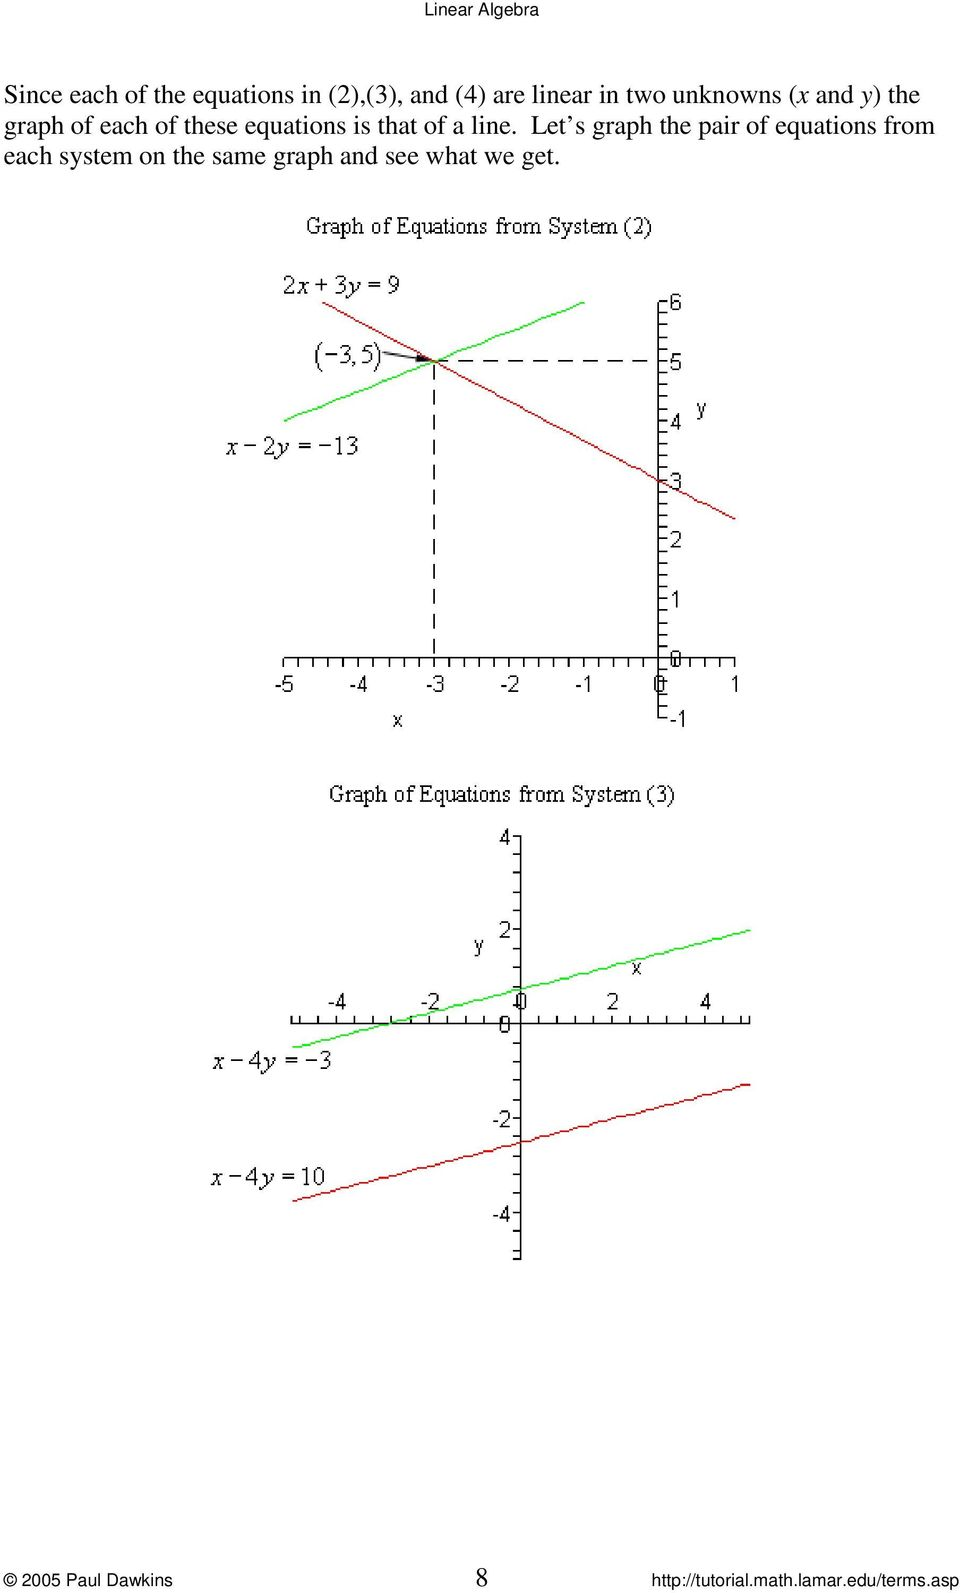 Let s graph the pair of equatios from each system o the same graph